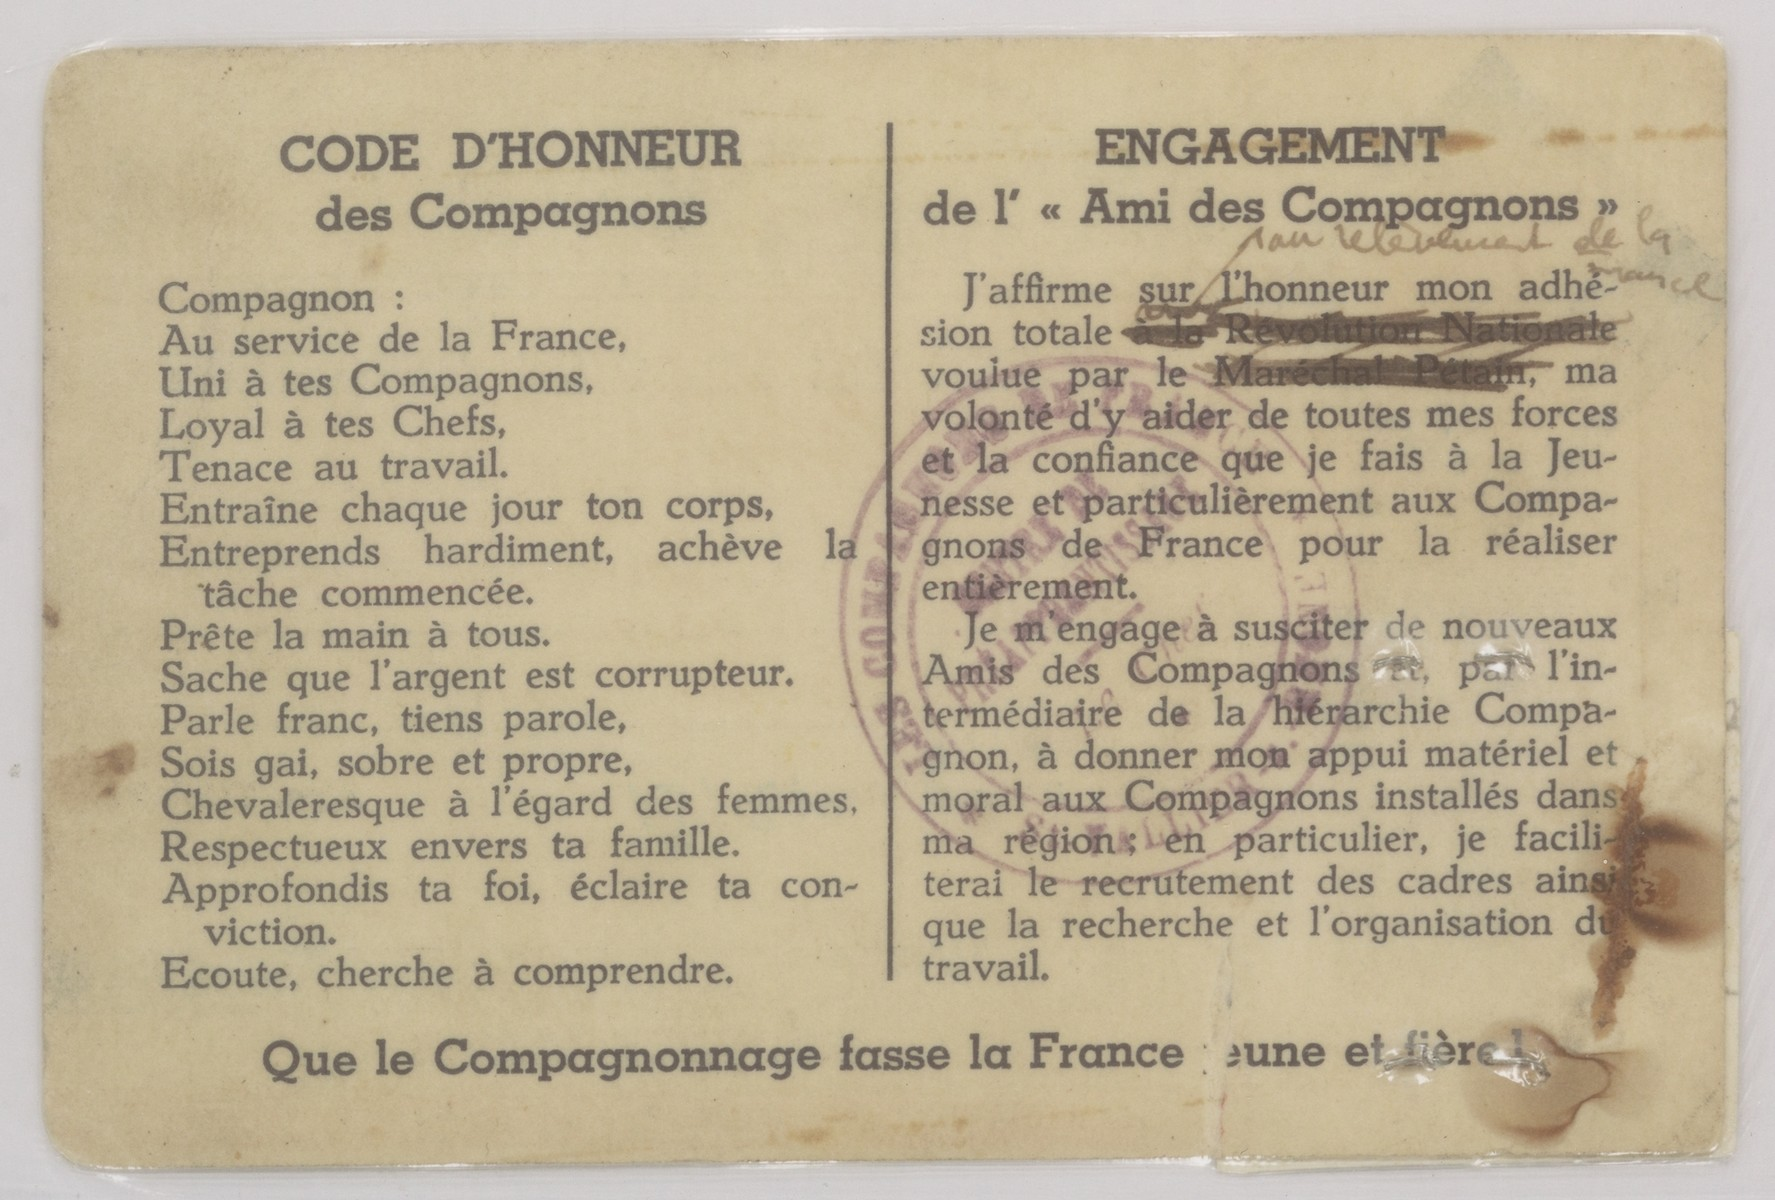 Back side of a false membership card in the Vichy paramilitary youth organization, Compagnons de France that belonged to Leo Bretholz, an Austrian Jew living in hiding under the name of Max Lefevre.